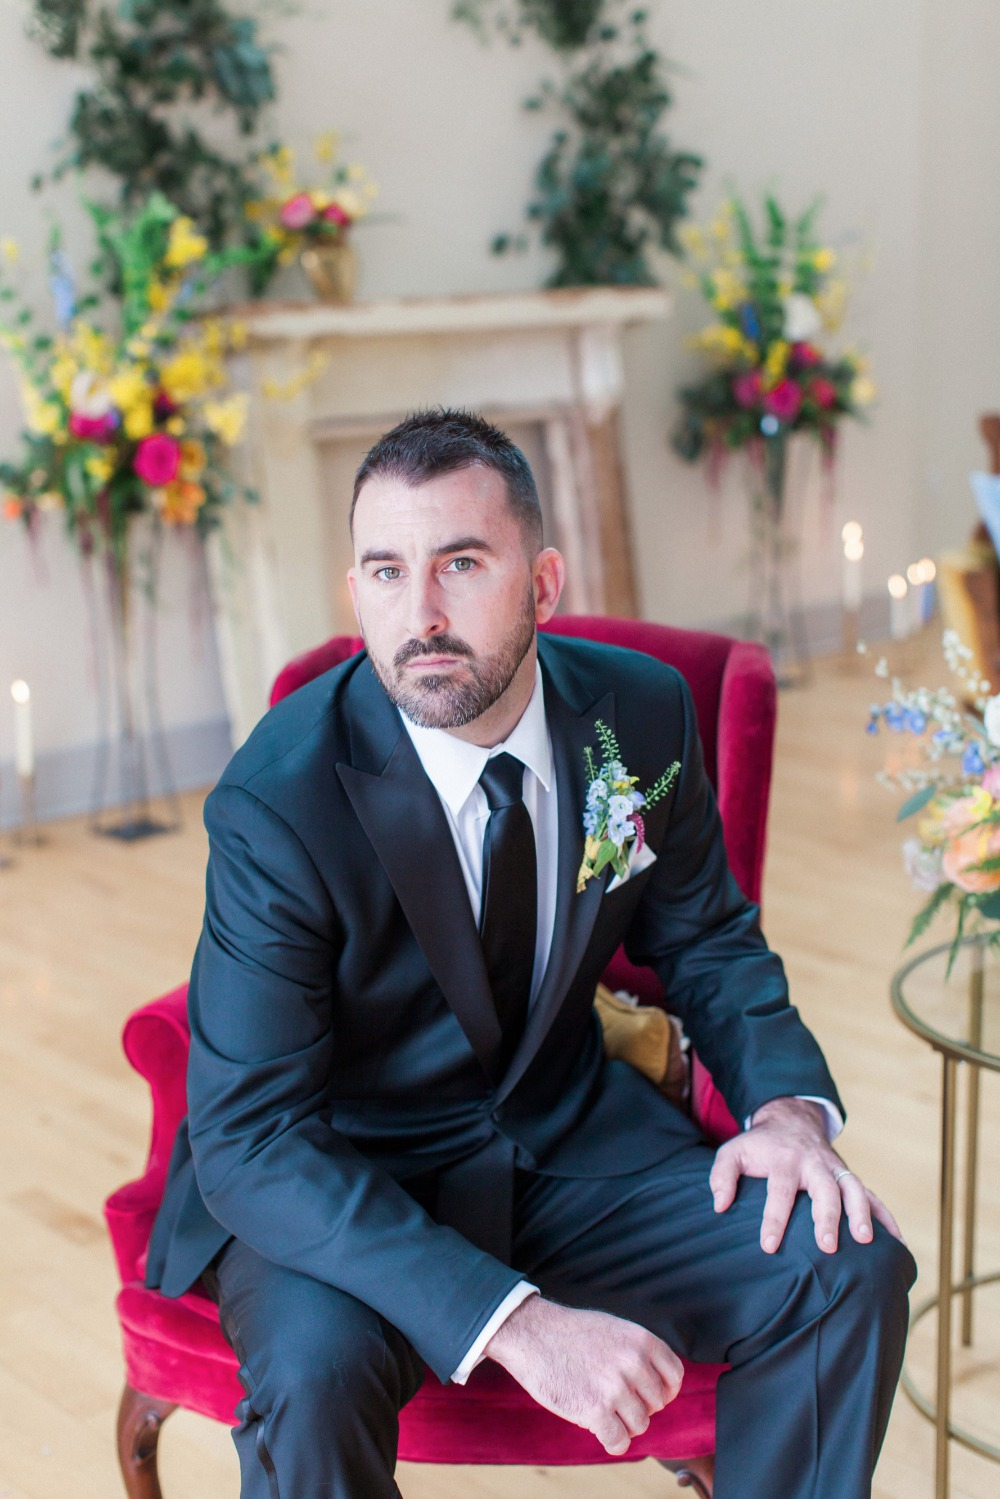 Groom look and style